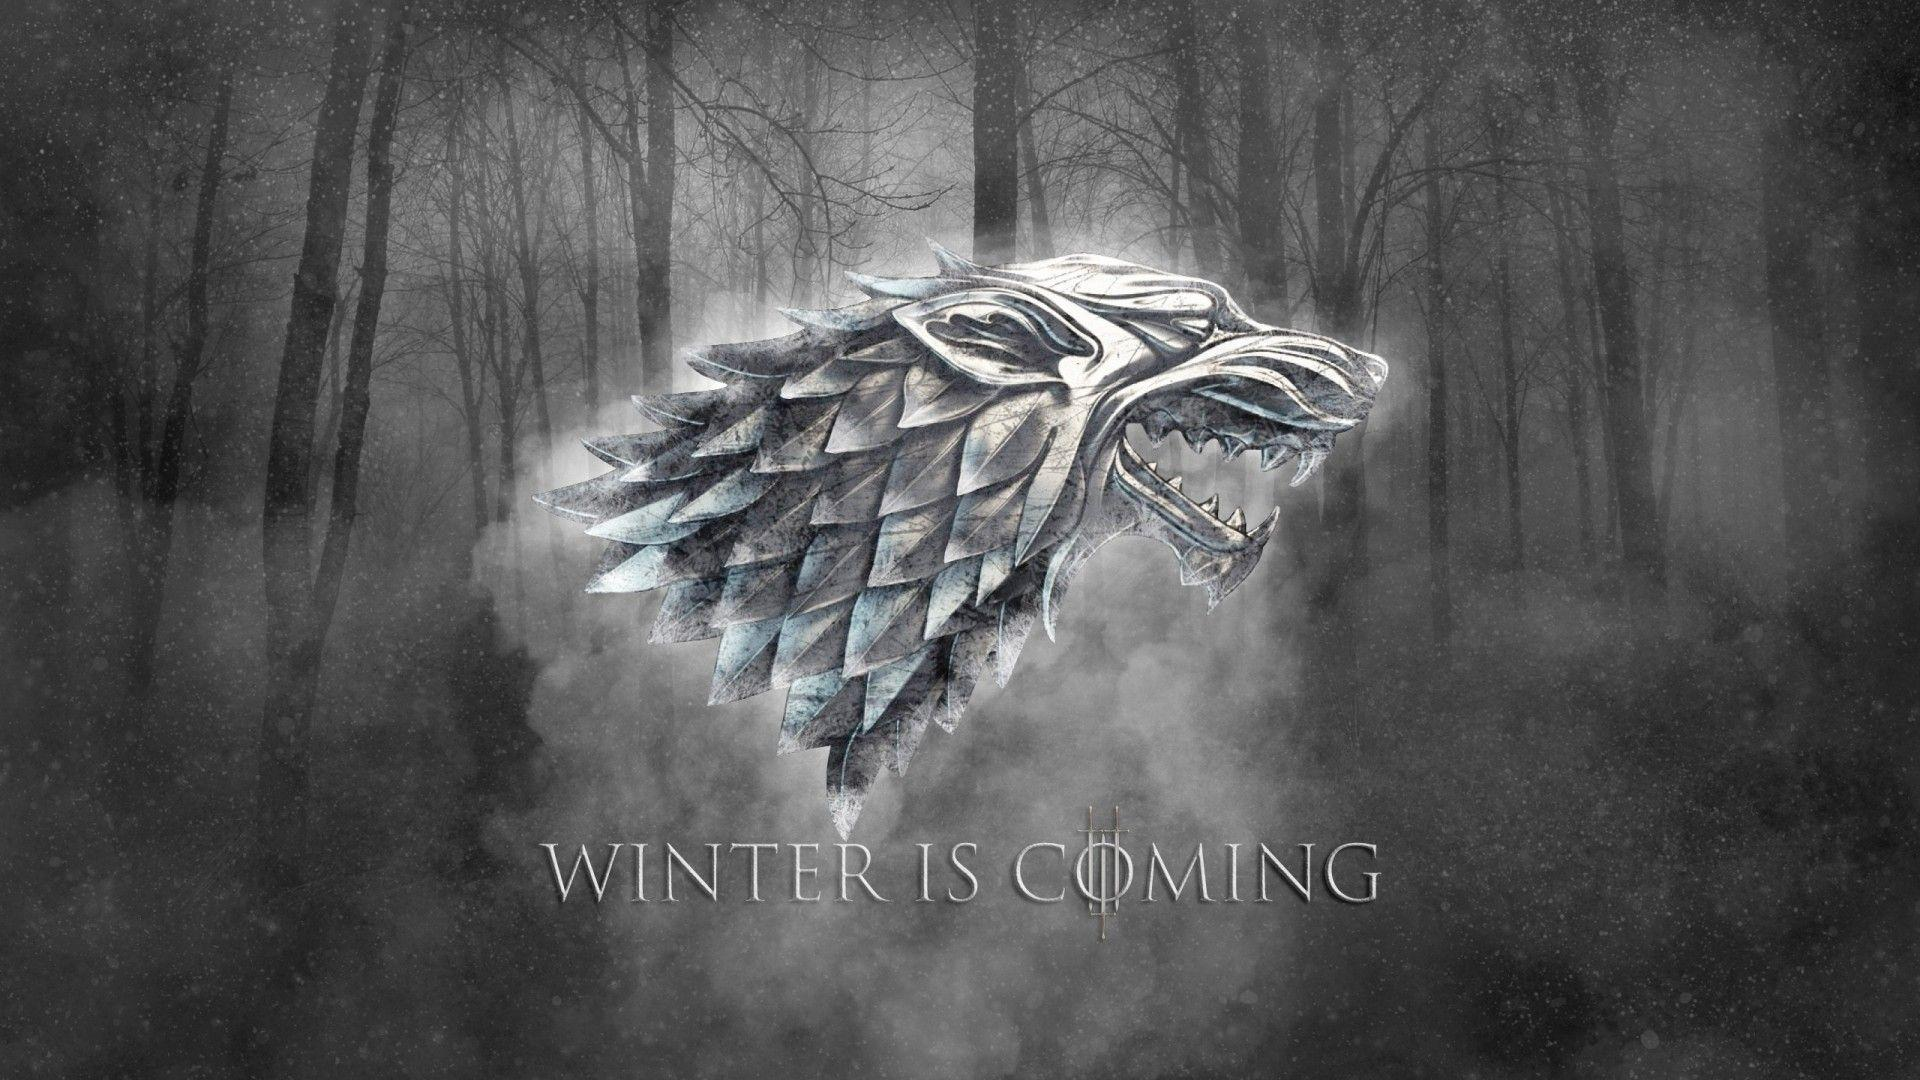 Game Of Thrones Stark Wallpapers Top Free Game Of Thrones Stark Backgrounds Wallpaperaccess